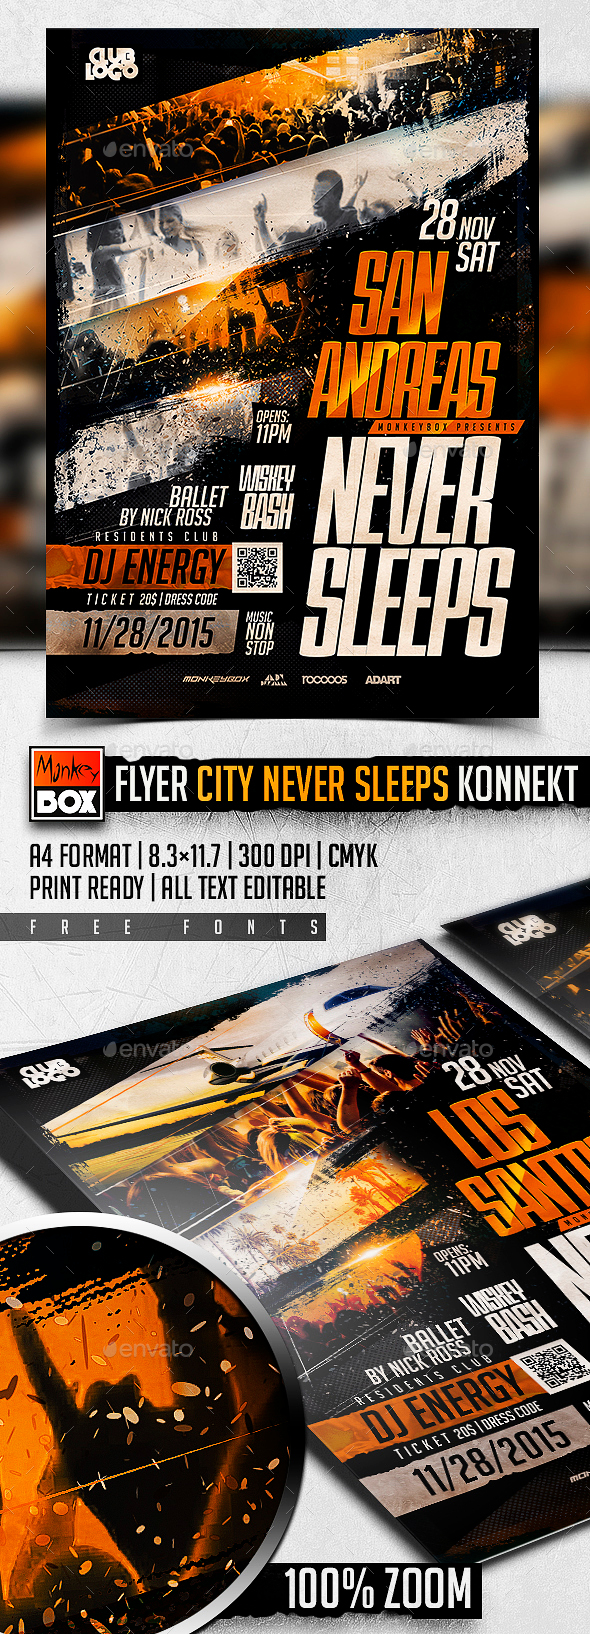 Flyer City Never Sleeps Konnekt - Events Flyers